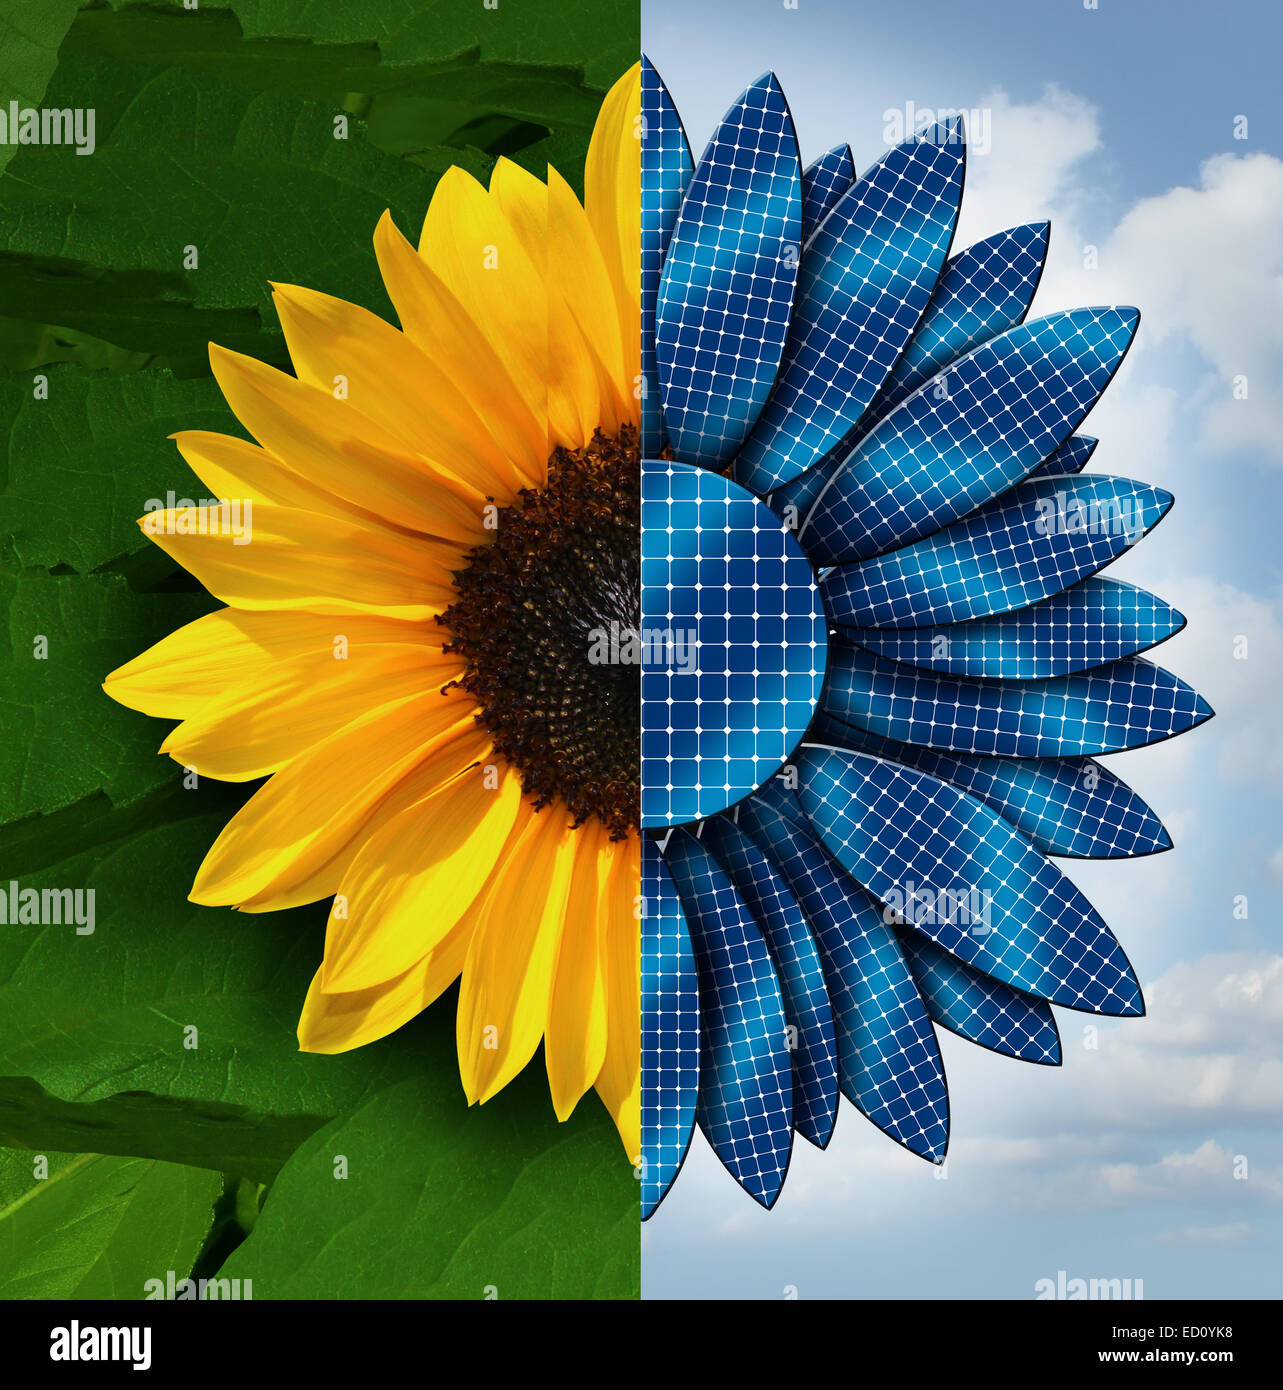 Sun Energy Concept As A Sunflower Divided In Two With The